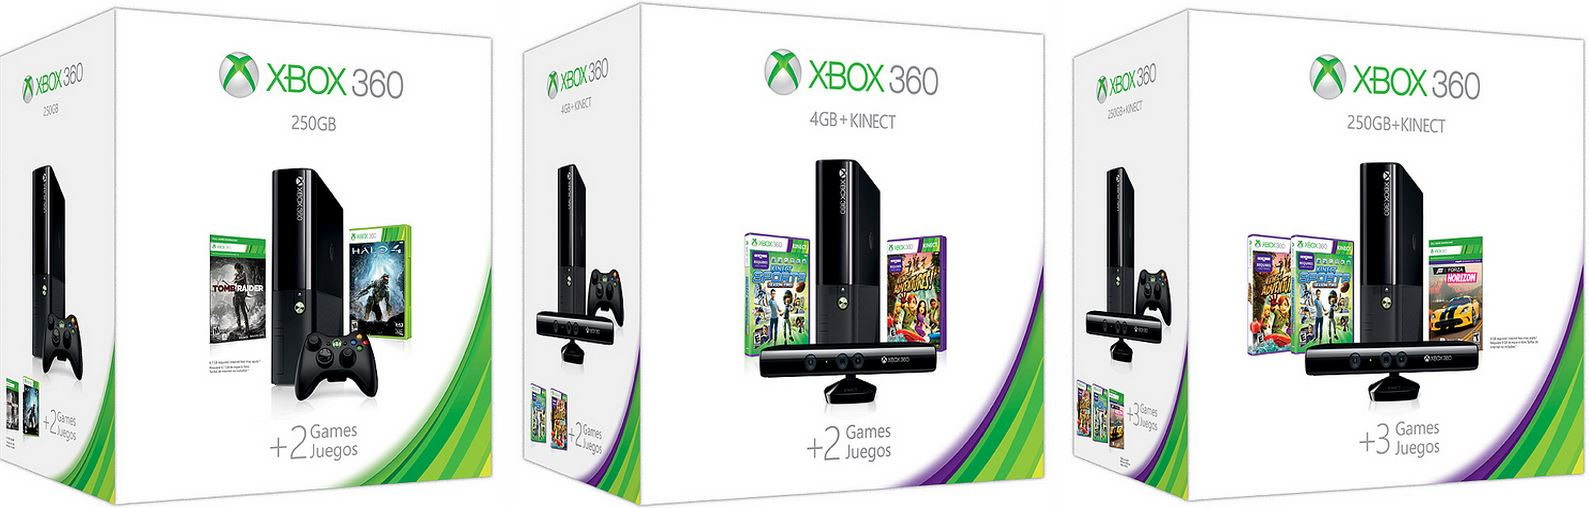 Microsoft announces new Xbox 360 holiday bundles